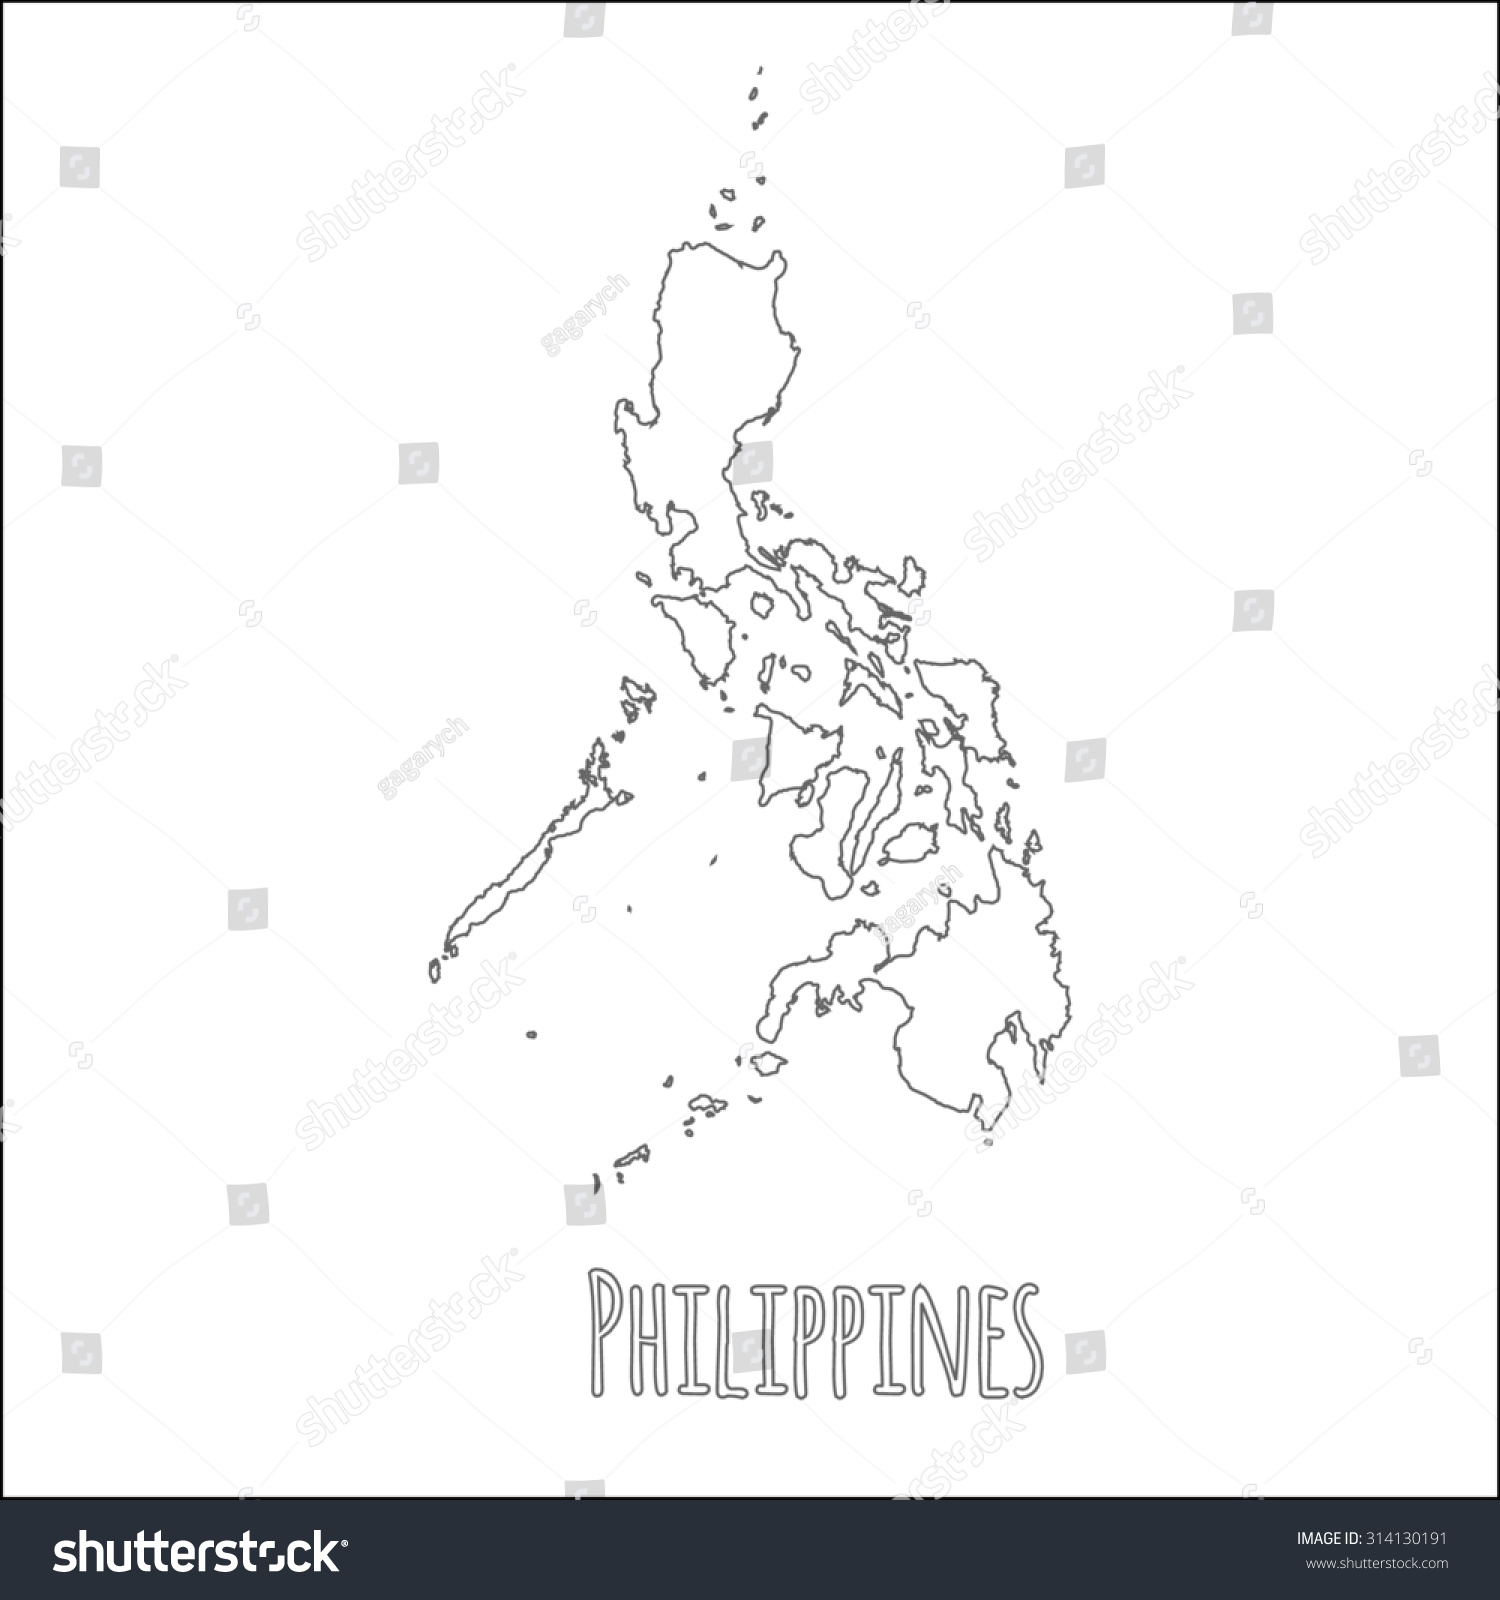 Simple Philippines Map.Outline Vector Map Philippines Simple Philippines Stock Vector